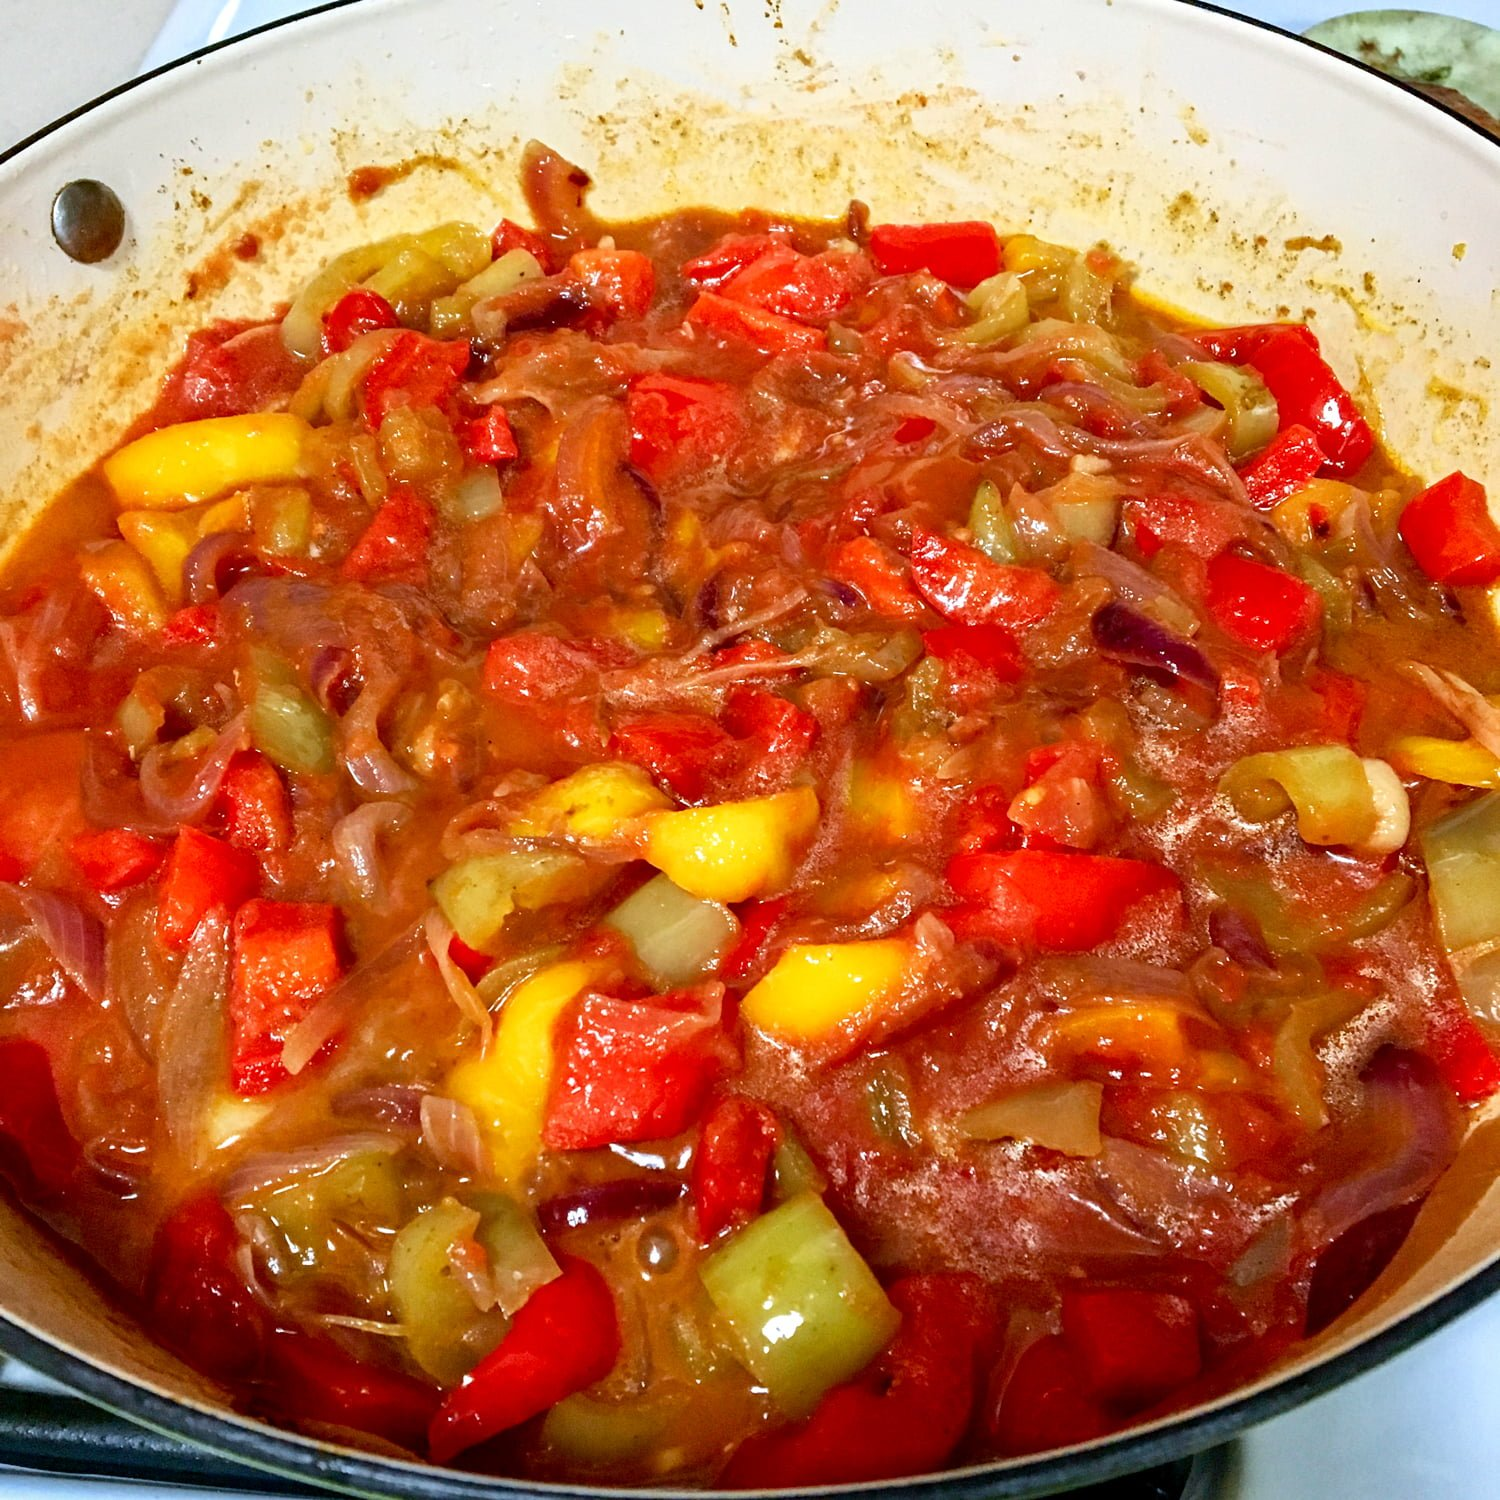 Lecso- Hungarian Pepper-Tomato Stew is a dish very similar to the Italian peperonata. The star of the recipe is the red sweet pepper. This dish is made with bell peppers, especially red sweet ones, onions, garlic and tomatoes. The sweet paprika is added to the sauce for a rich flavor.